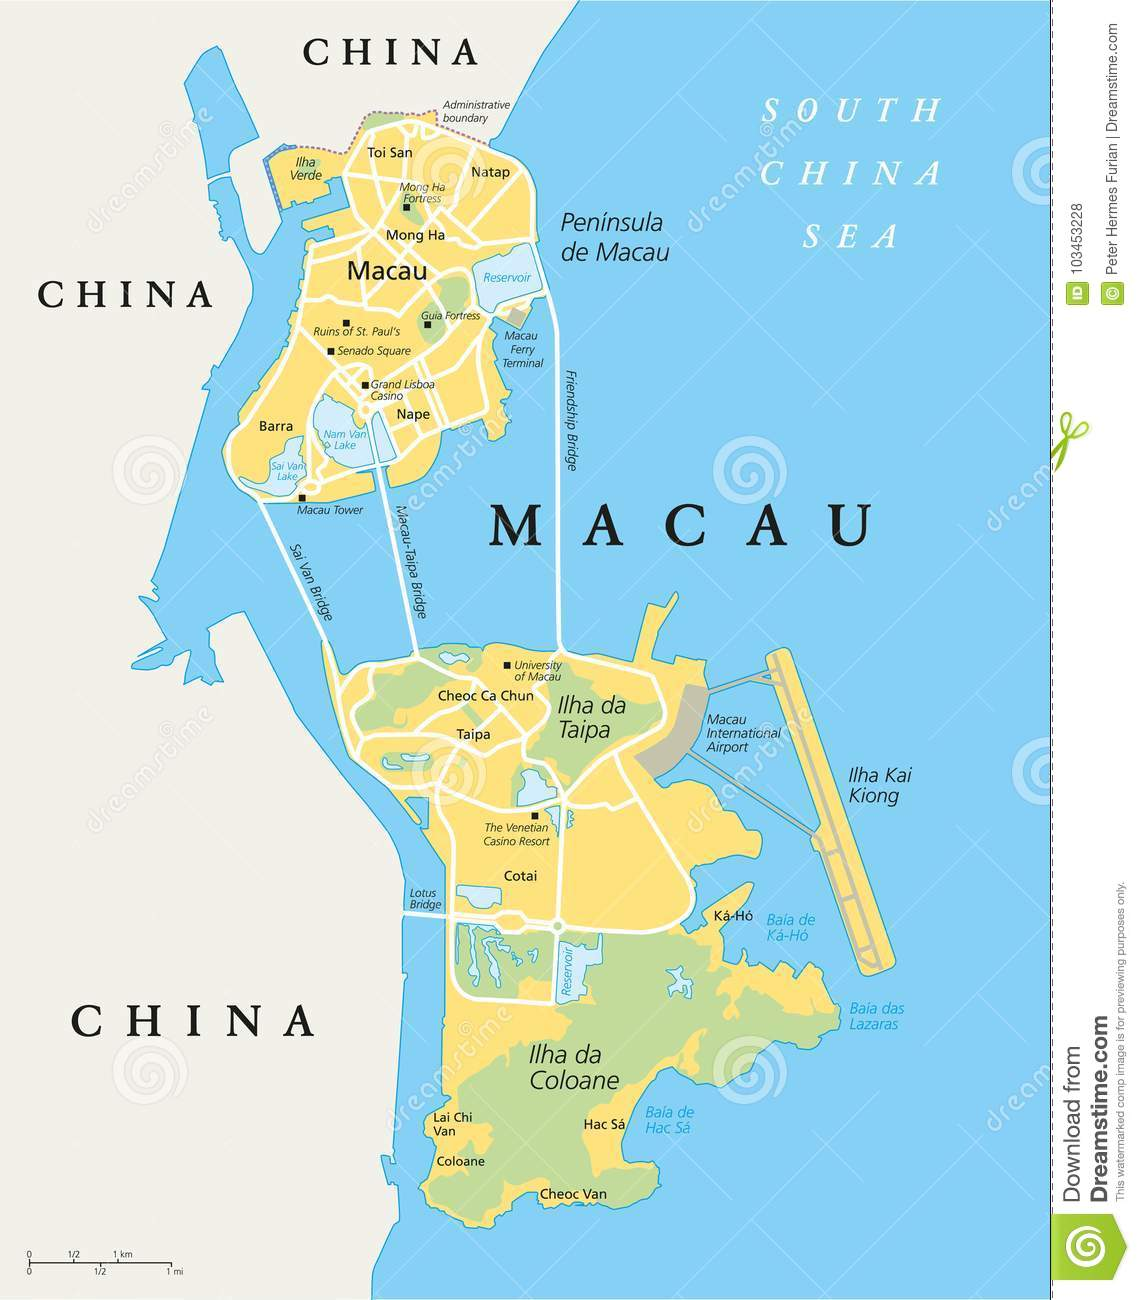 Macau Political Map stock vector. Illustration of verde ... on map of sao tome principe, map of hong kong, map of cantonese, map of nanjing university, map of mongolia, map of french equatorial africa, map china, map of bissau, map of hankou, map of scotland, map of sulaymaniyah, map of no. africa, map of ormuz, map of brunei, map of asia, map of cotai, map of malawi, map of democratic kampuchea, map of jinzhou, map of united arab of emirates,